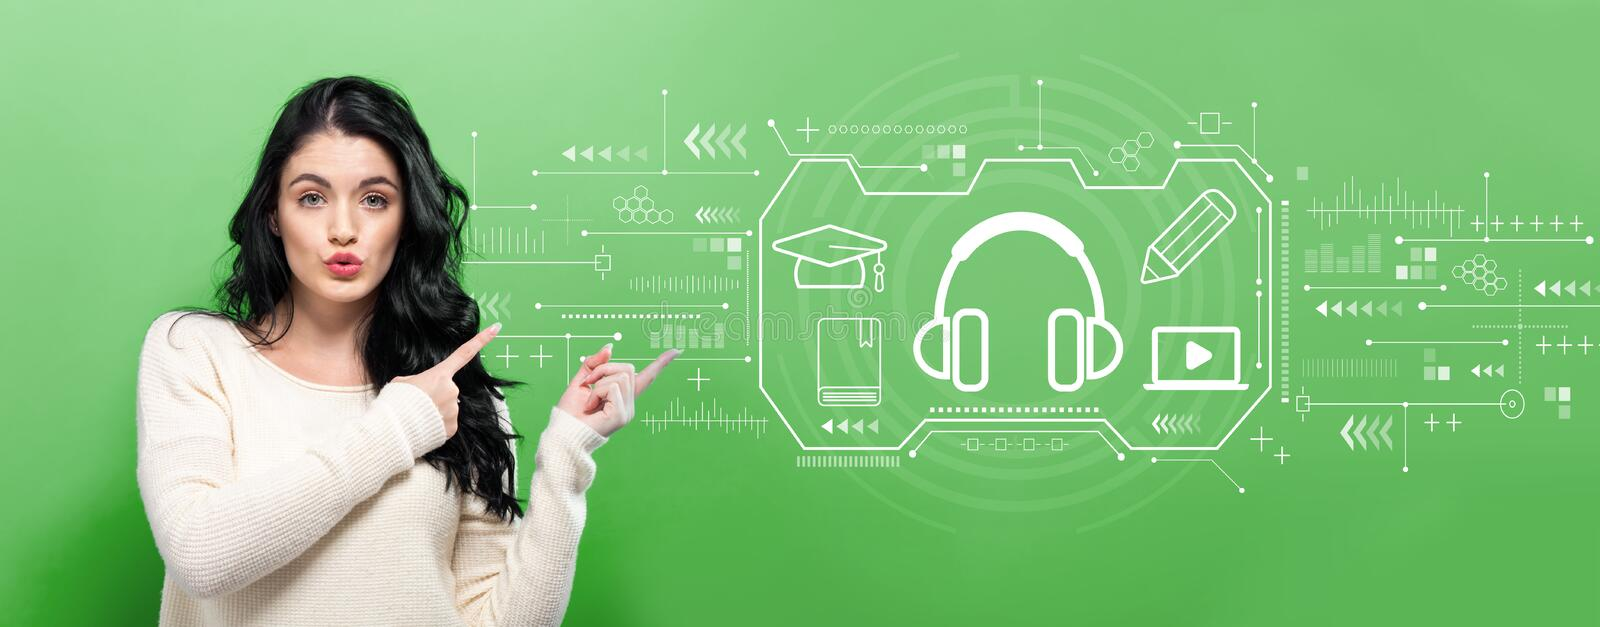 E-learning concept with young woman stock image